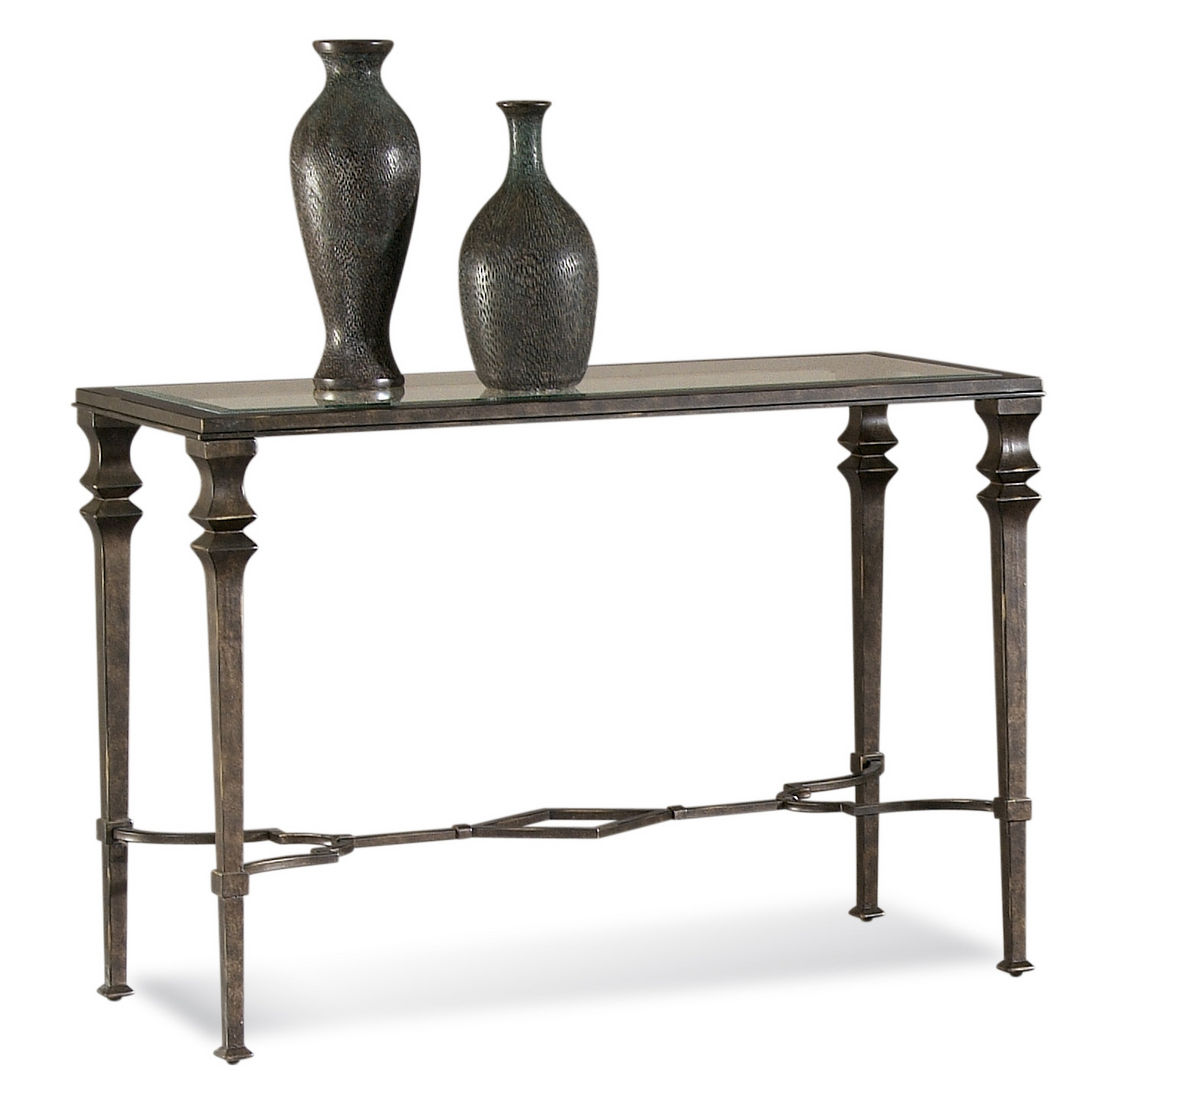 Lido console table wrought iron finish t1210 400 decor south lido console table wrought iron finish t1210 400 geotapseo Image collections